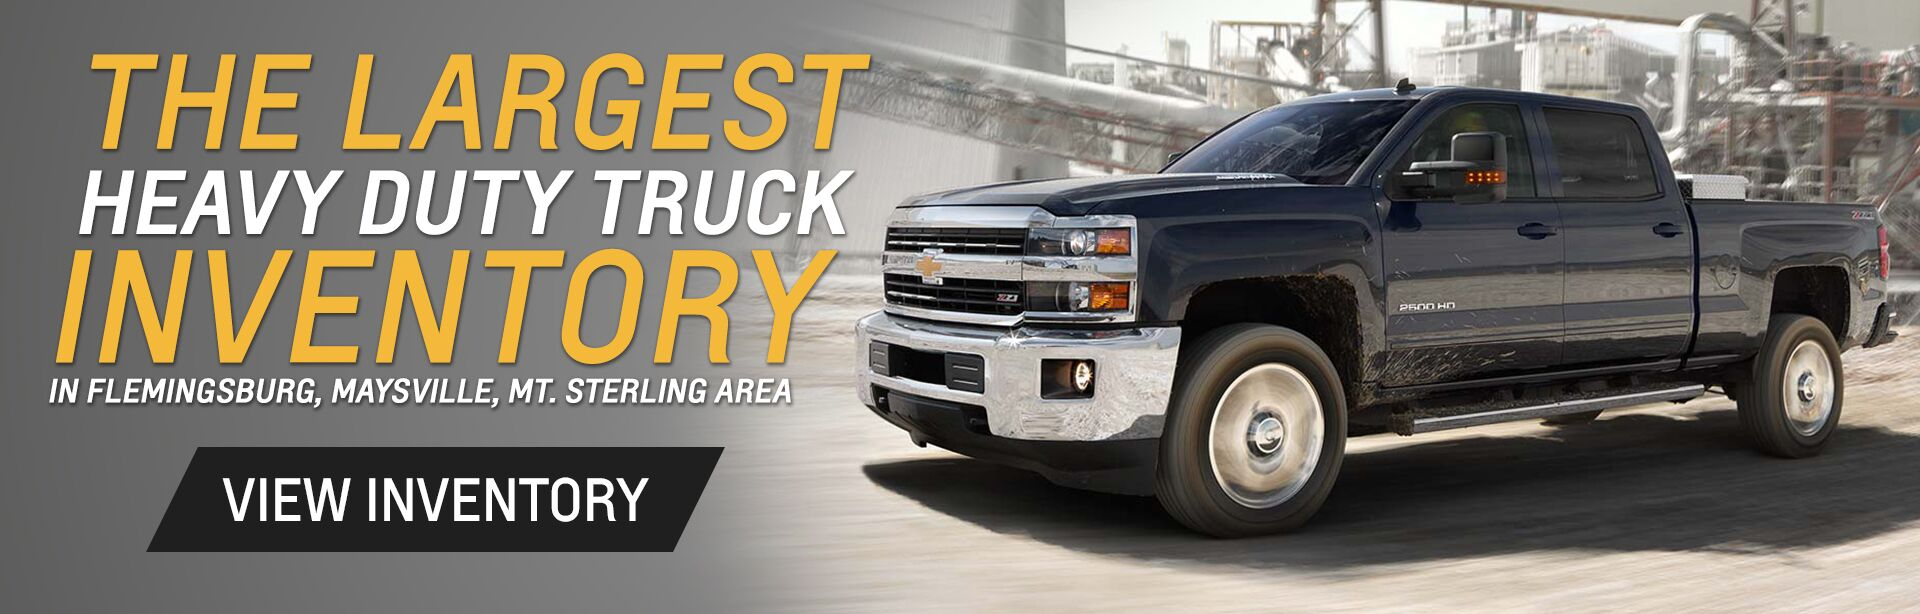 Largest HD Truck Inventory